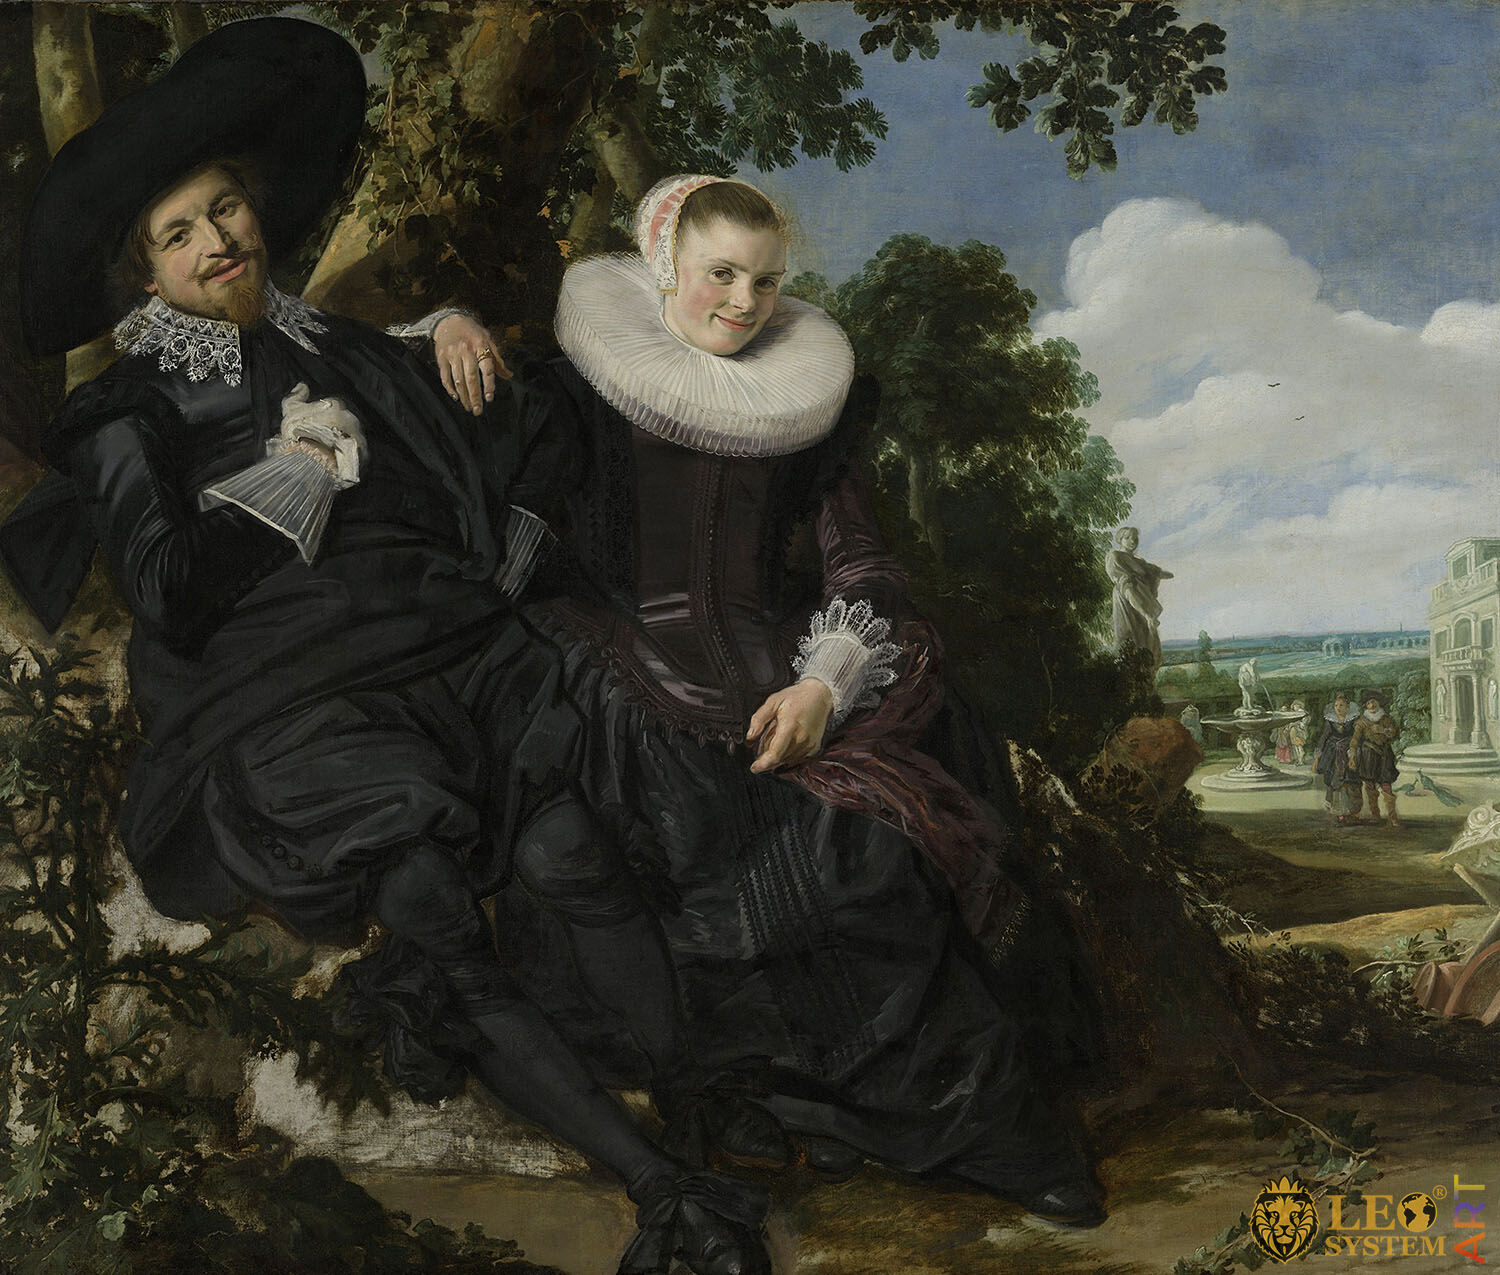 Marriage Portrait of Isaac Massa and Beatrix van der Laen, Artist: Frans Hals, 1622, Amsterdam, Netherlands, Original painting